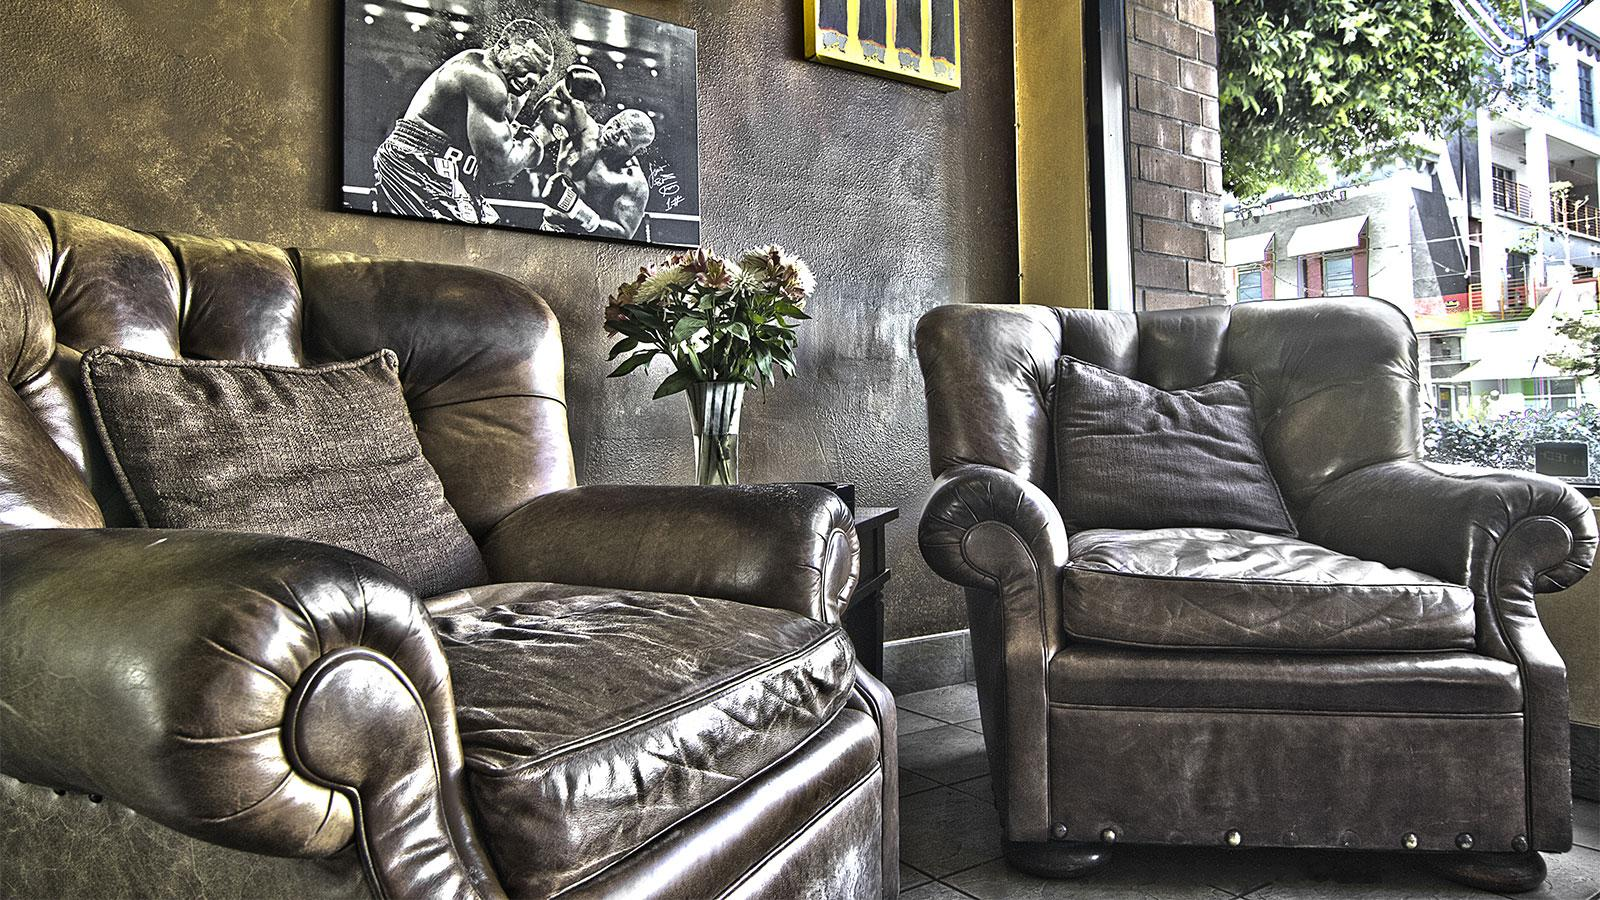 Though the space is small, Hollywood Smoke offers comfortable leather chairs for visitors to relax on while they enjoy their cigar.